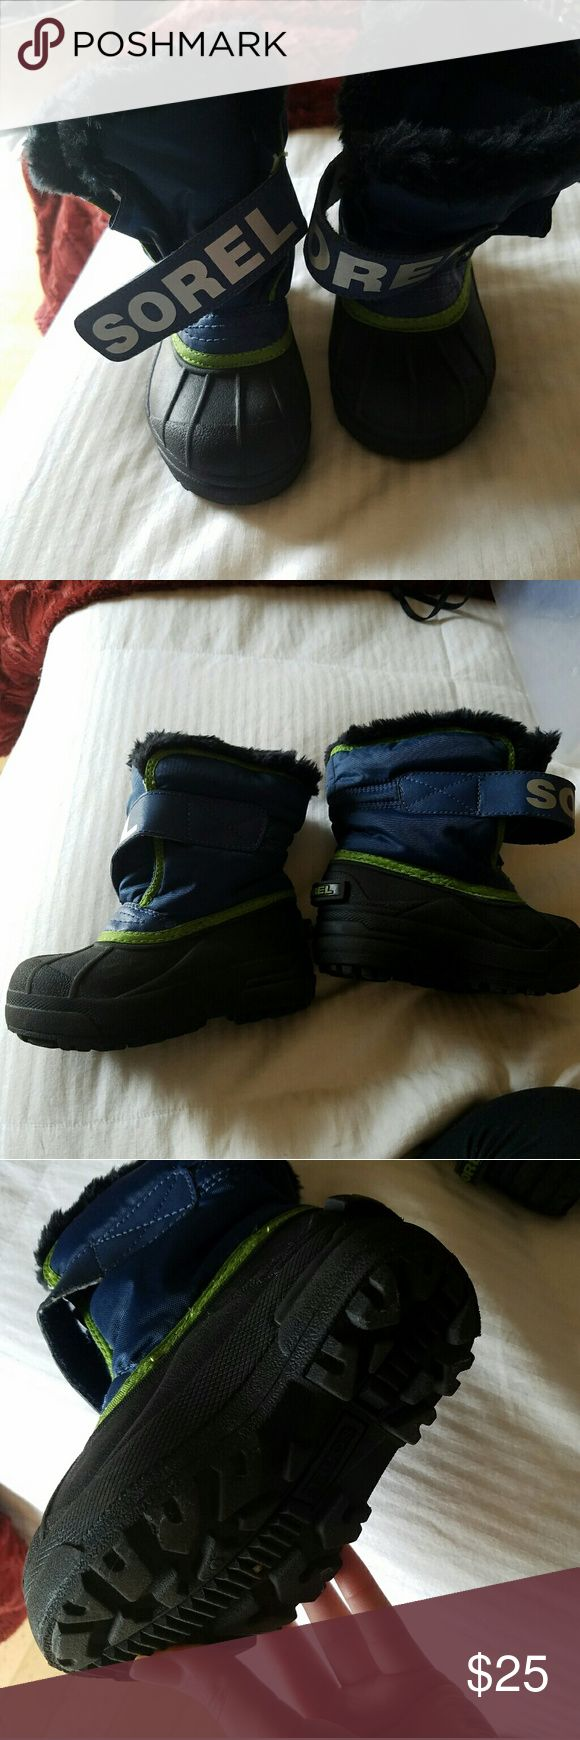 Childrens Sorel snow boots Used 3 times sorel snow boots Size childrens 9 Shoes Rain & Snow Boots